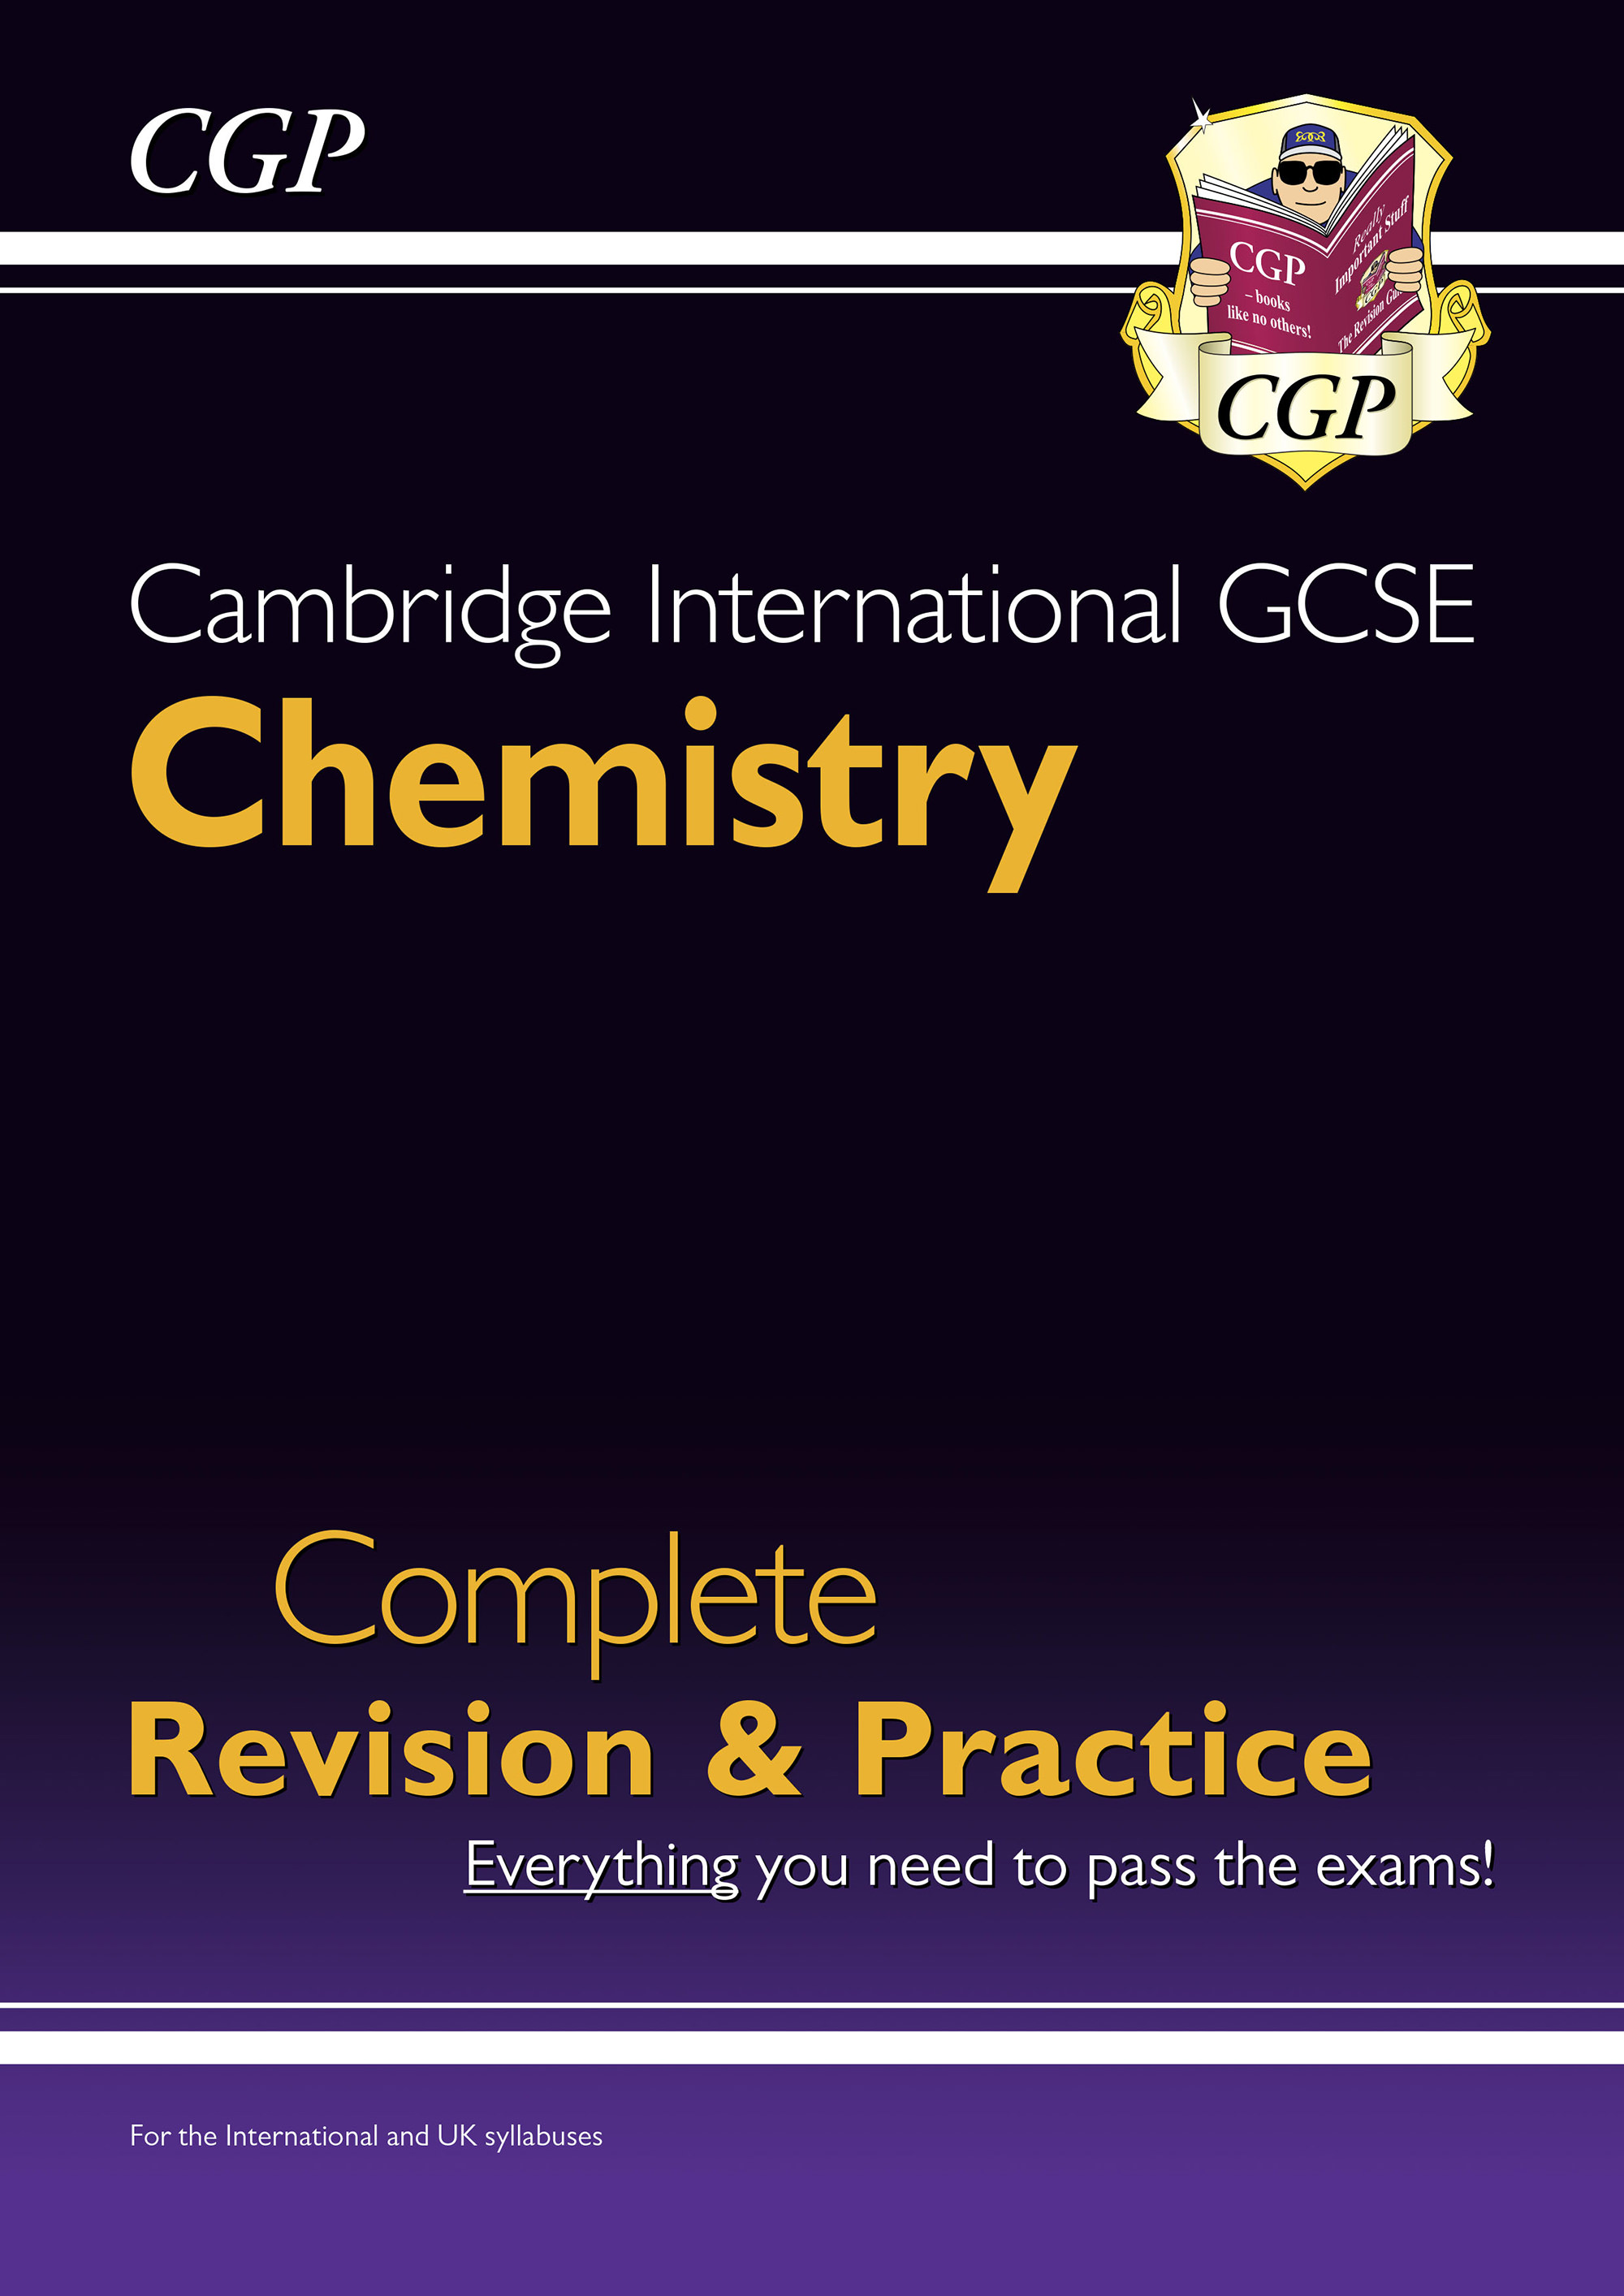 CISI41D - New Cambridge International GCSE Chemistry Complete Revision & Practice: Core & Extended